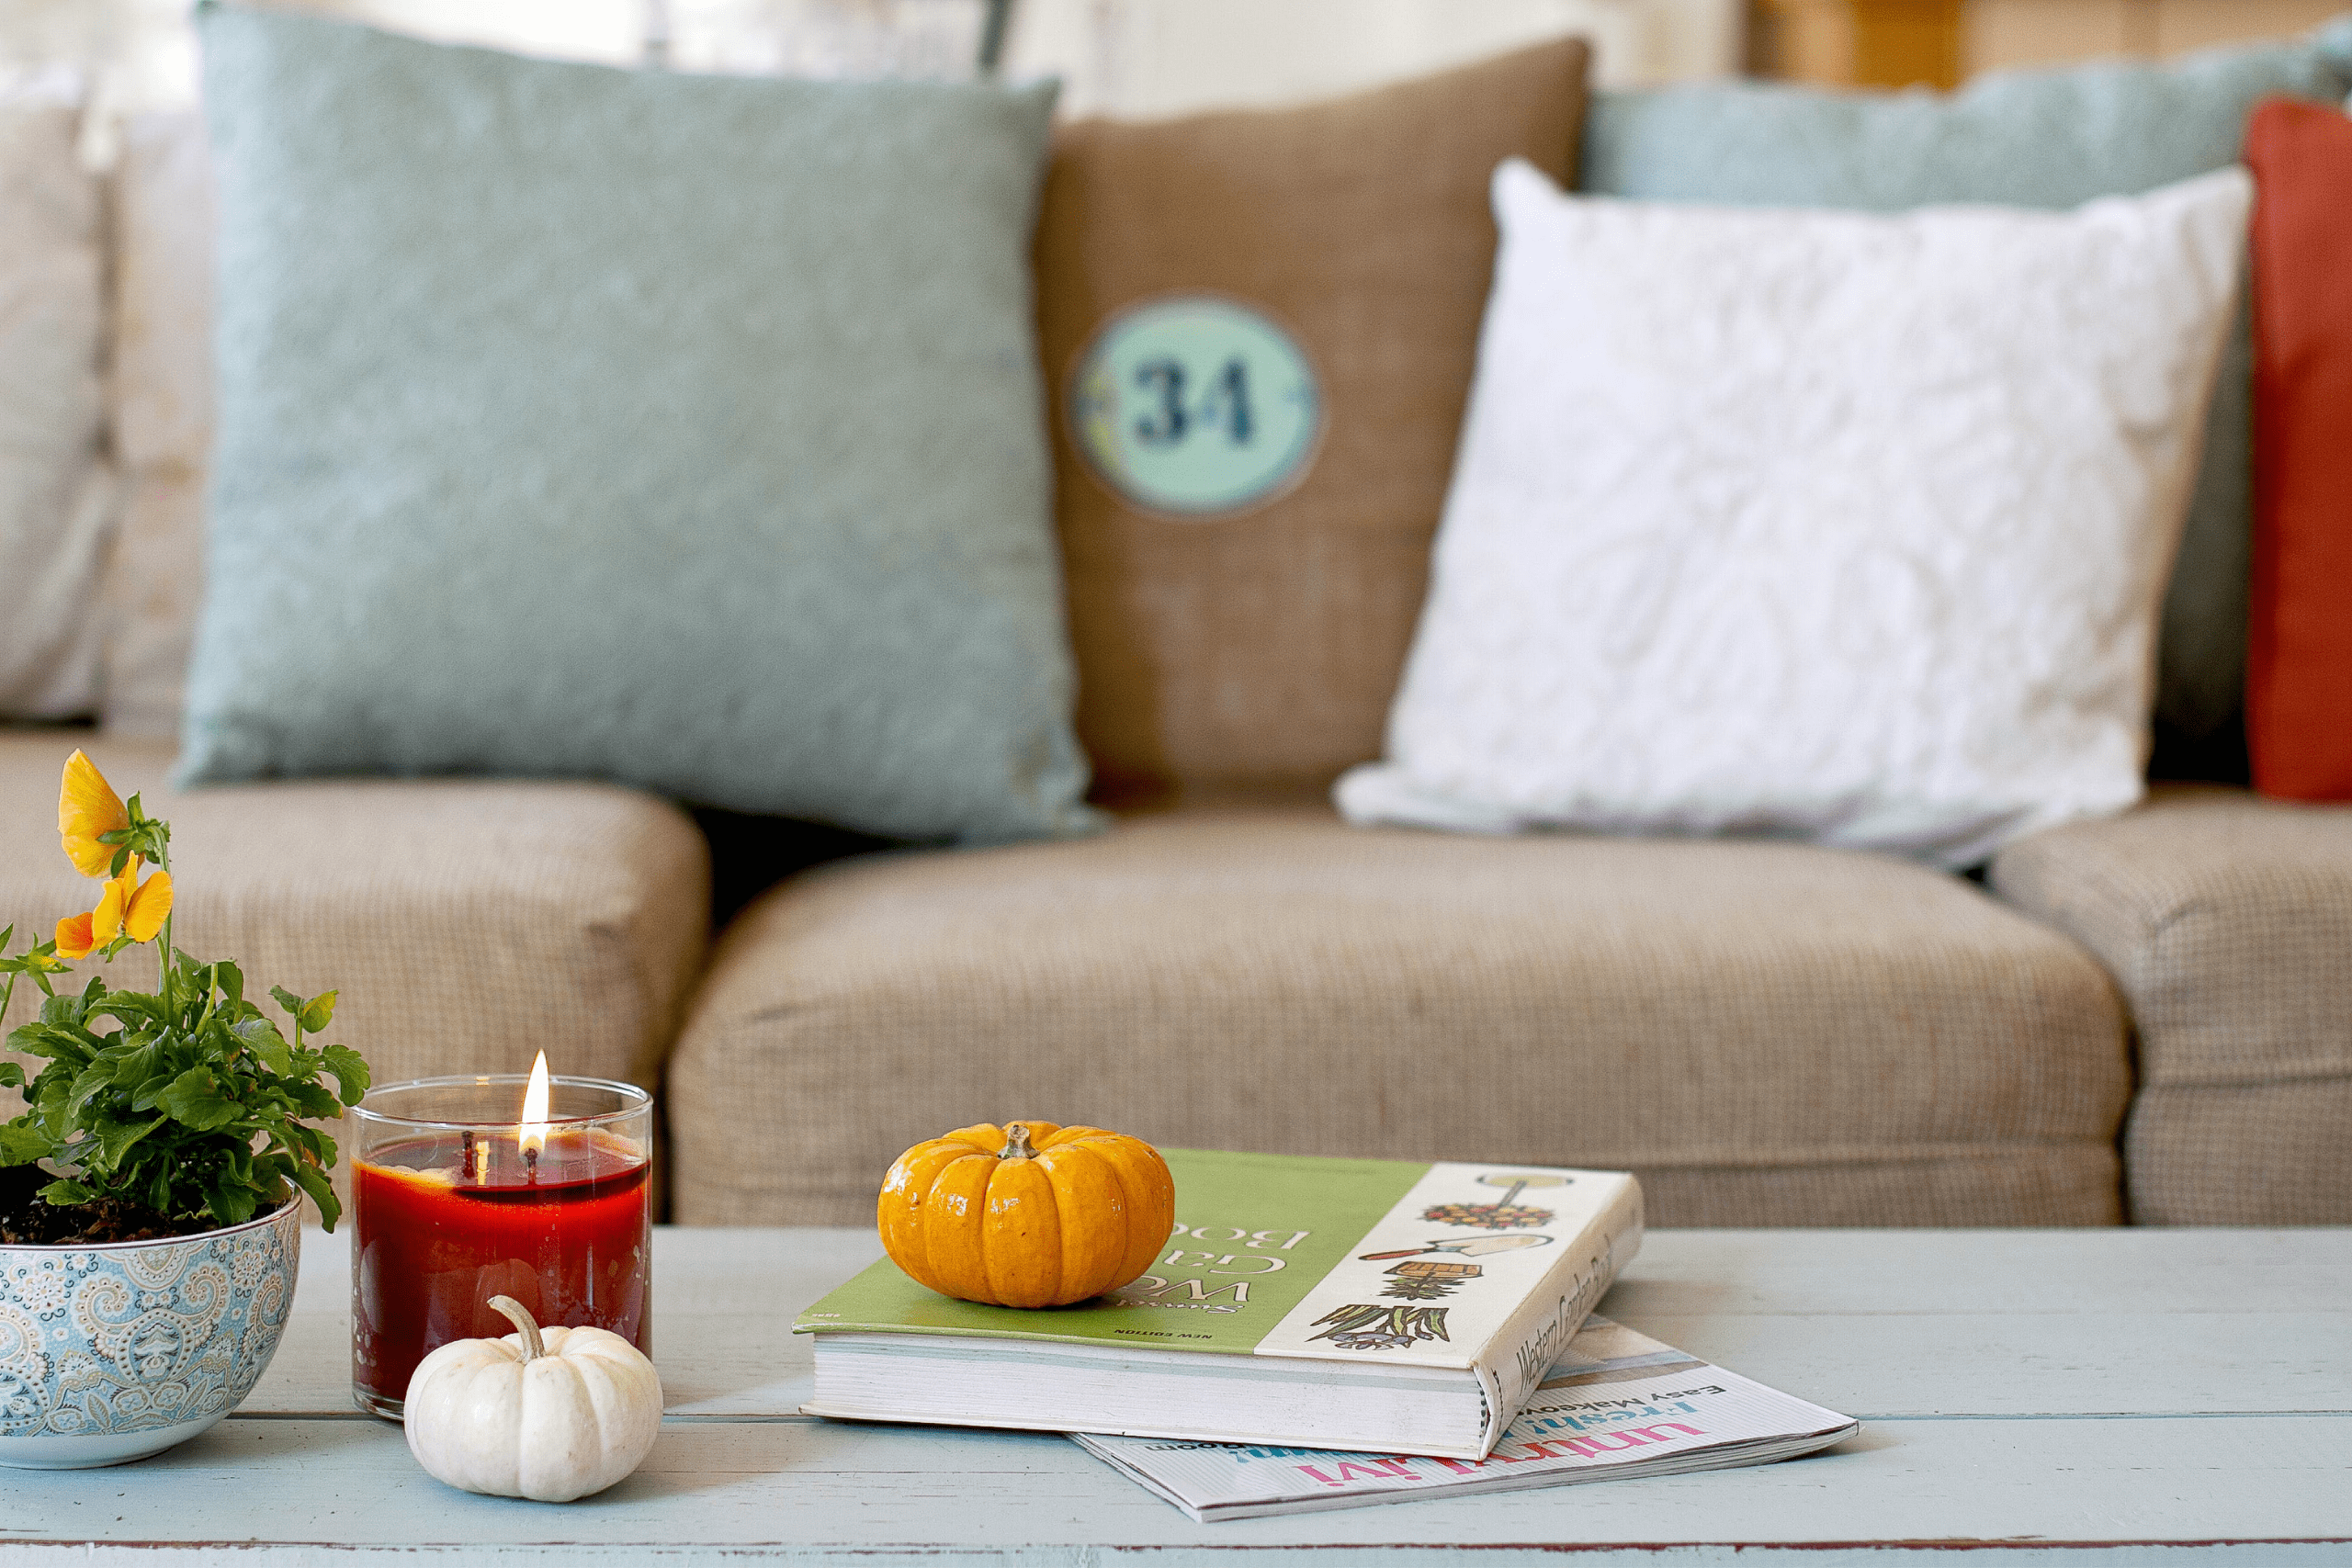 3 Items That Should be on Every Homeowner's Fall Cleaning Checklist